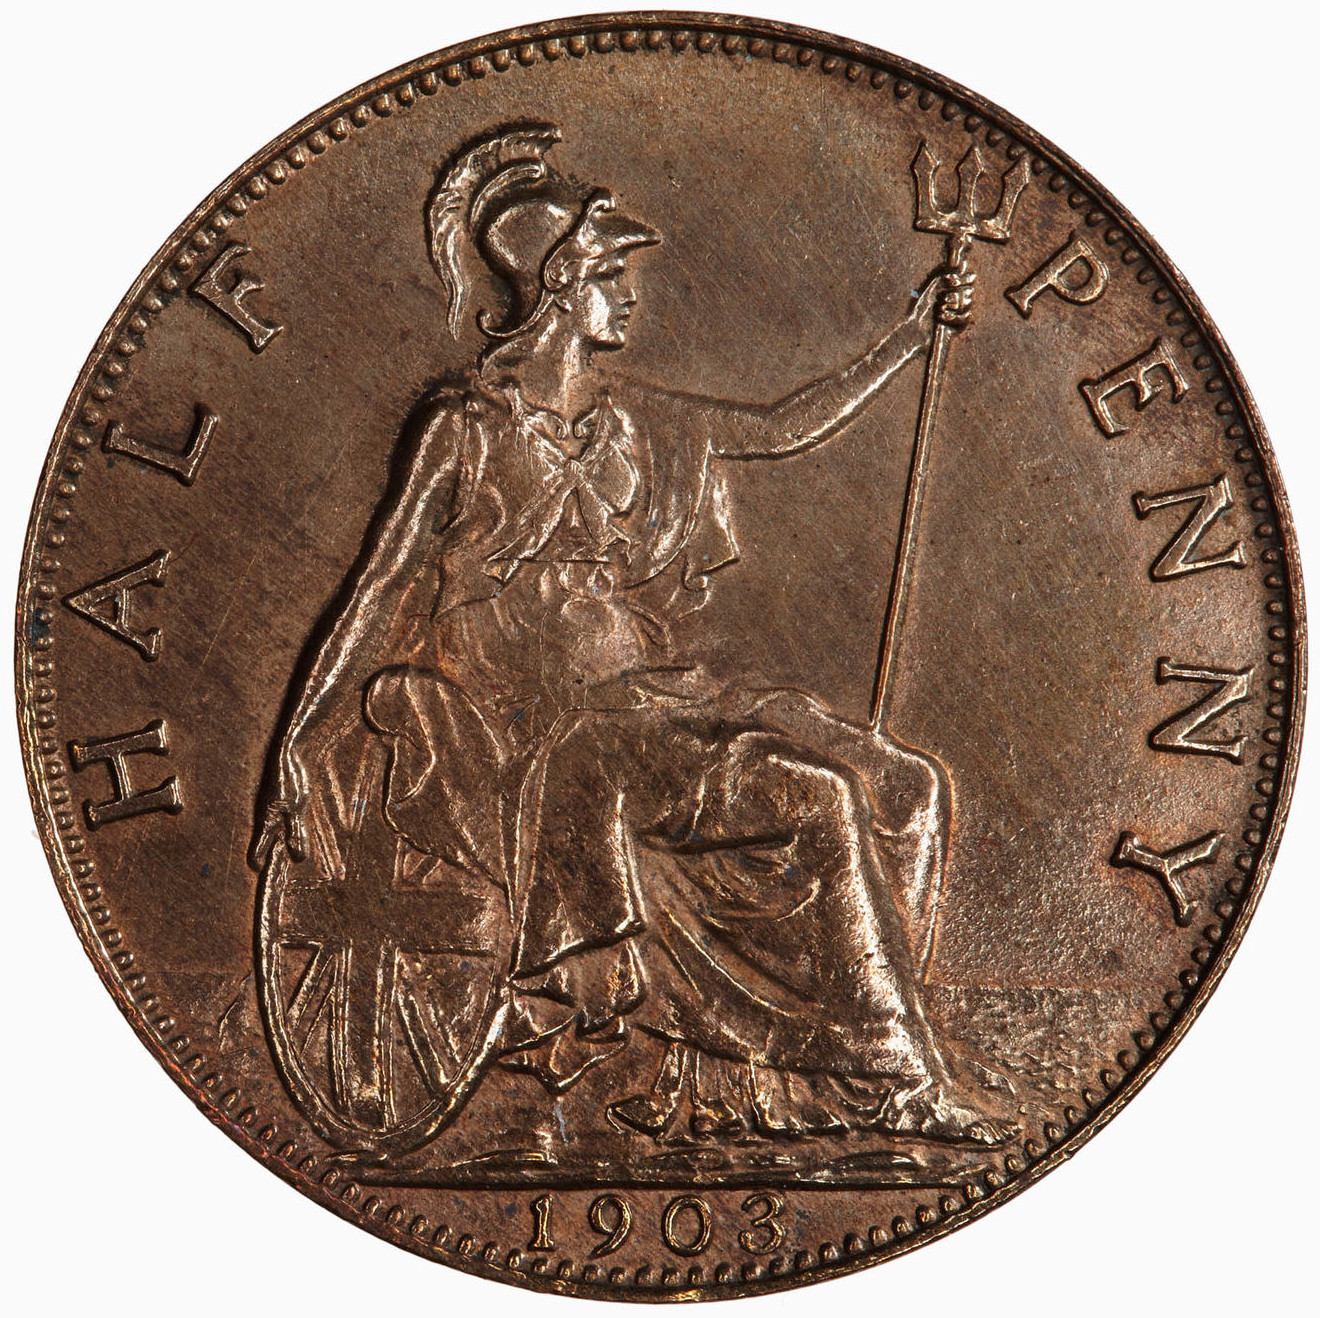 Halfpenny 1903: Photo Coin - Halfpenny, Edward VII, Great Britain, 1903